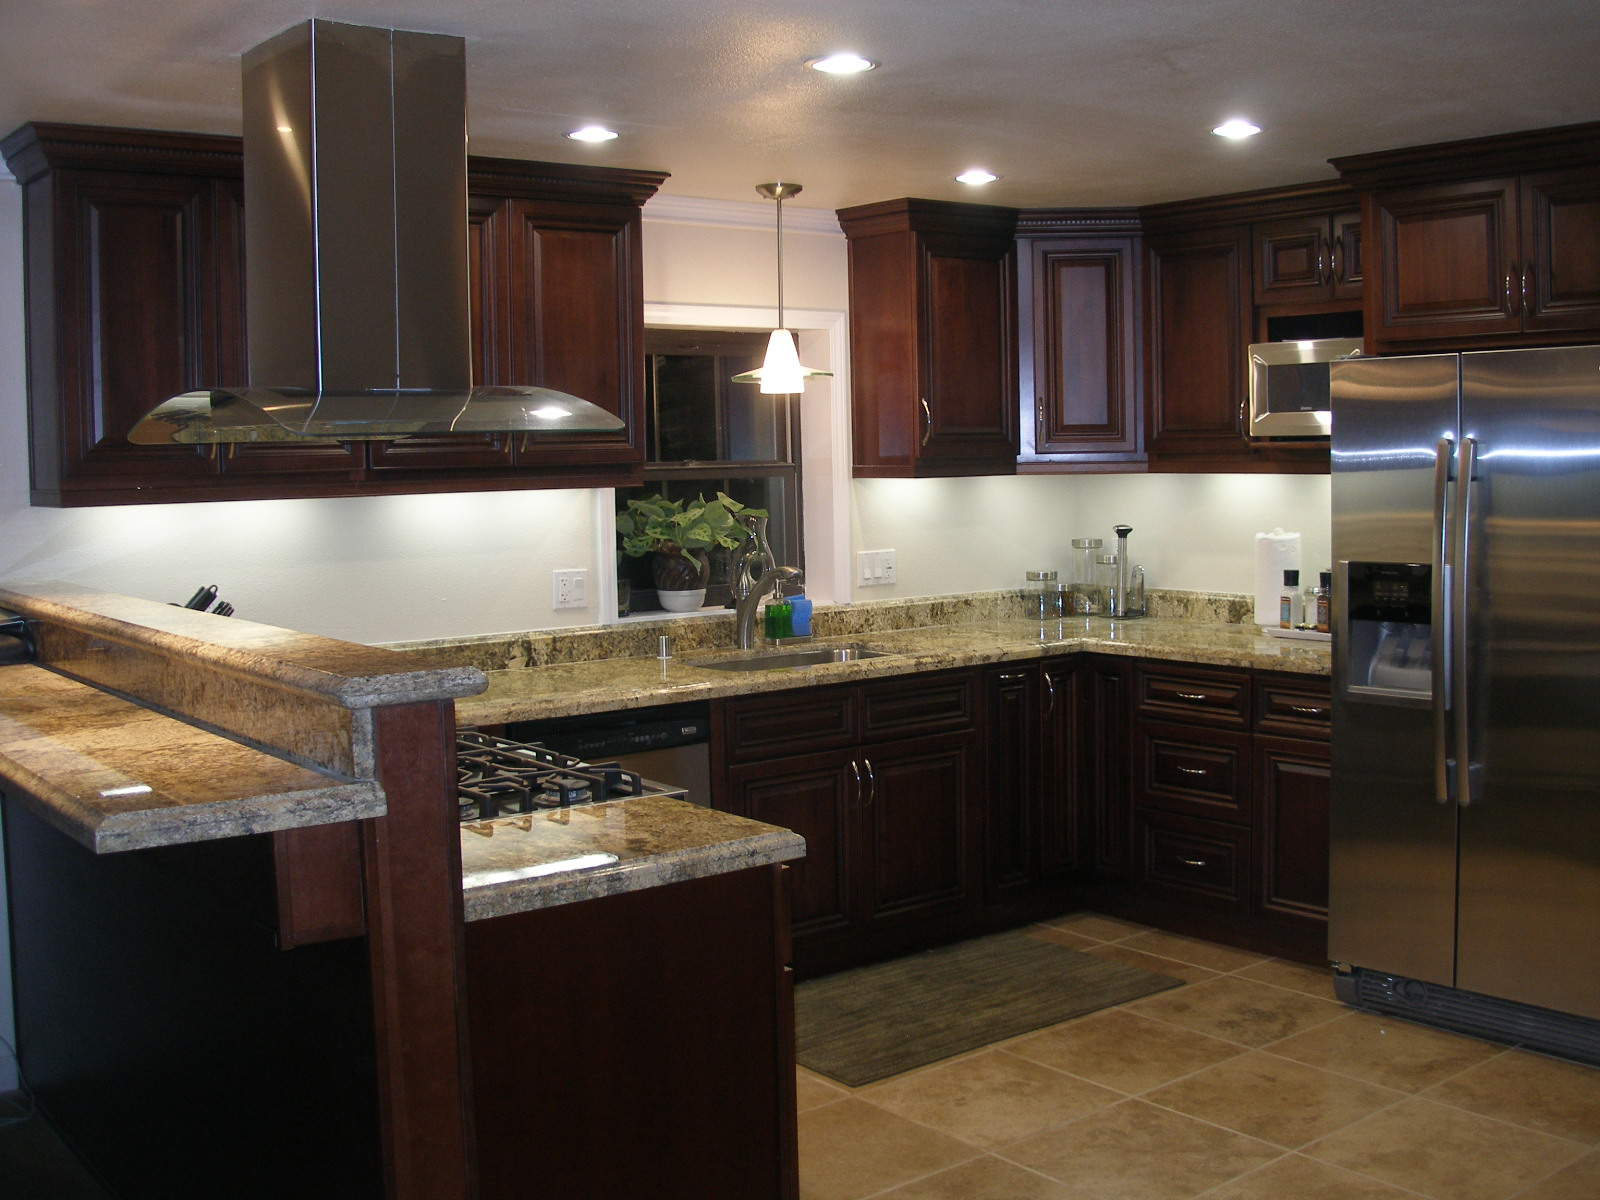 Kitchen Remodeling | Brad T Jones Construction on Kitchen Remodeling Ideas  id=81751